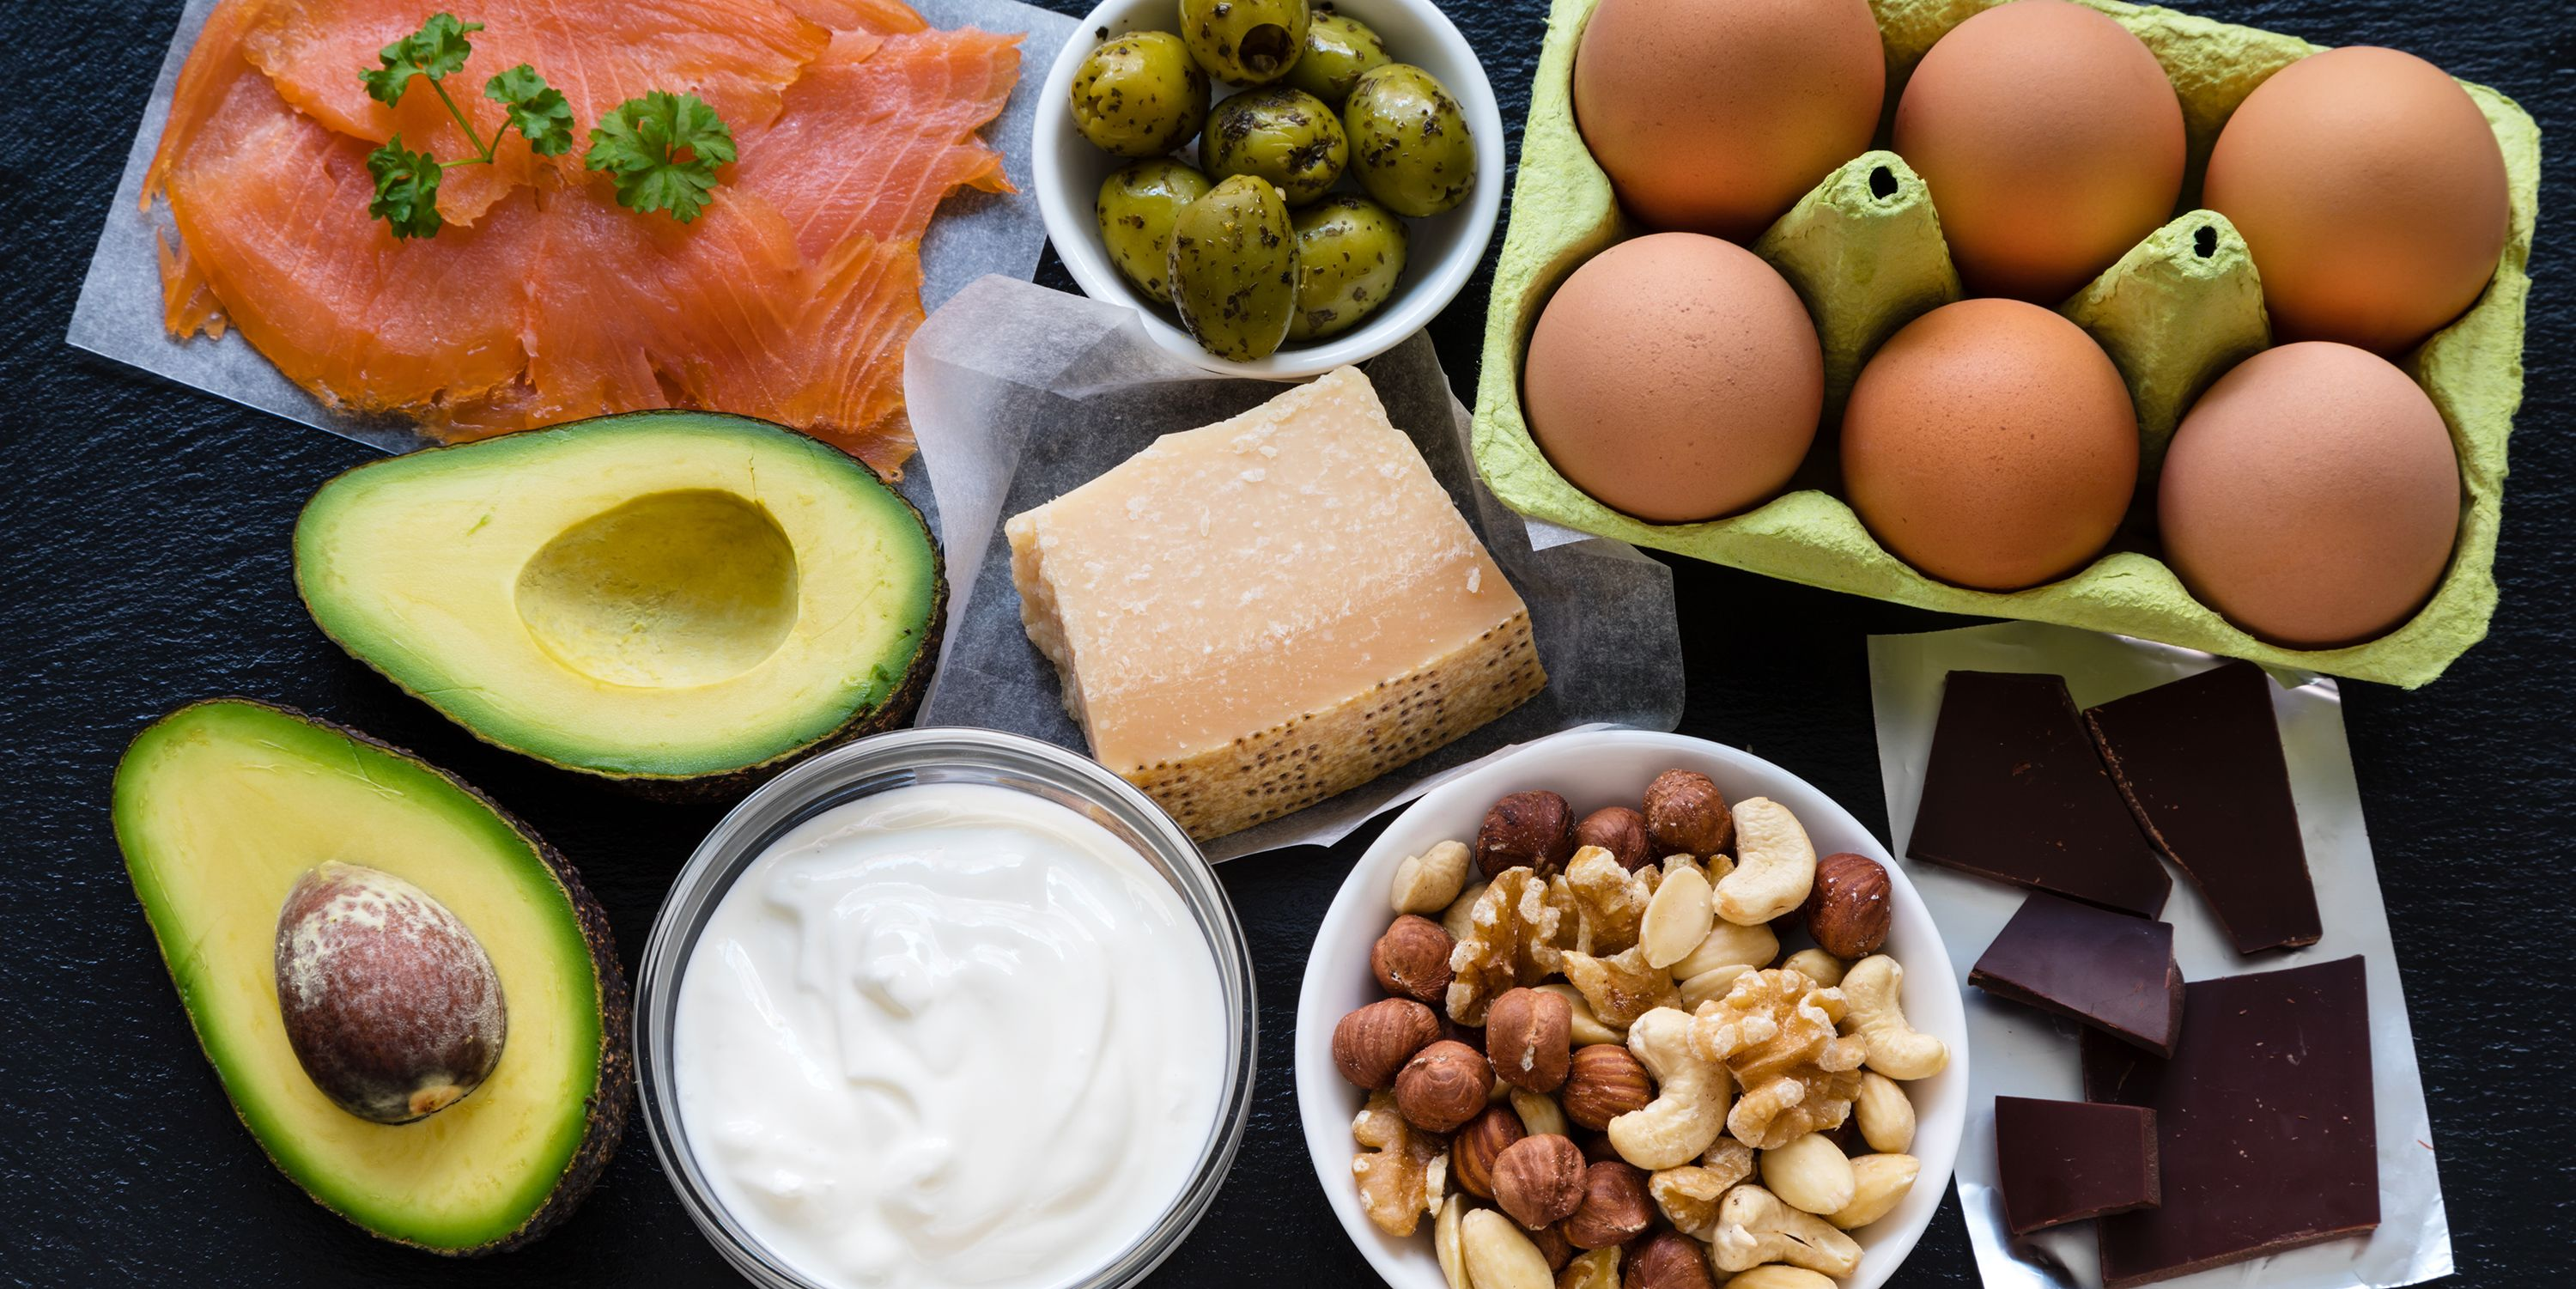 Fruits and vegetables you can eat on a keto diet